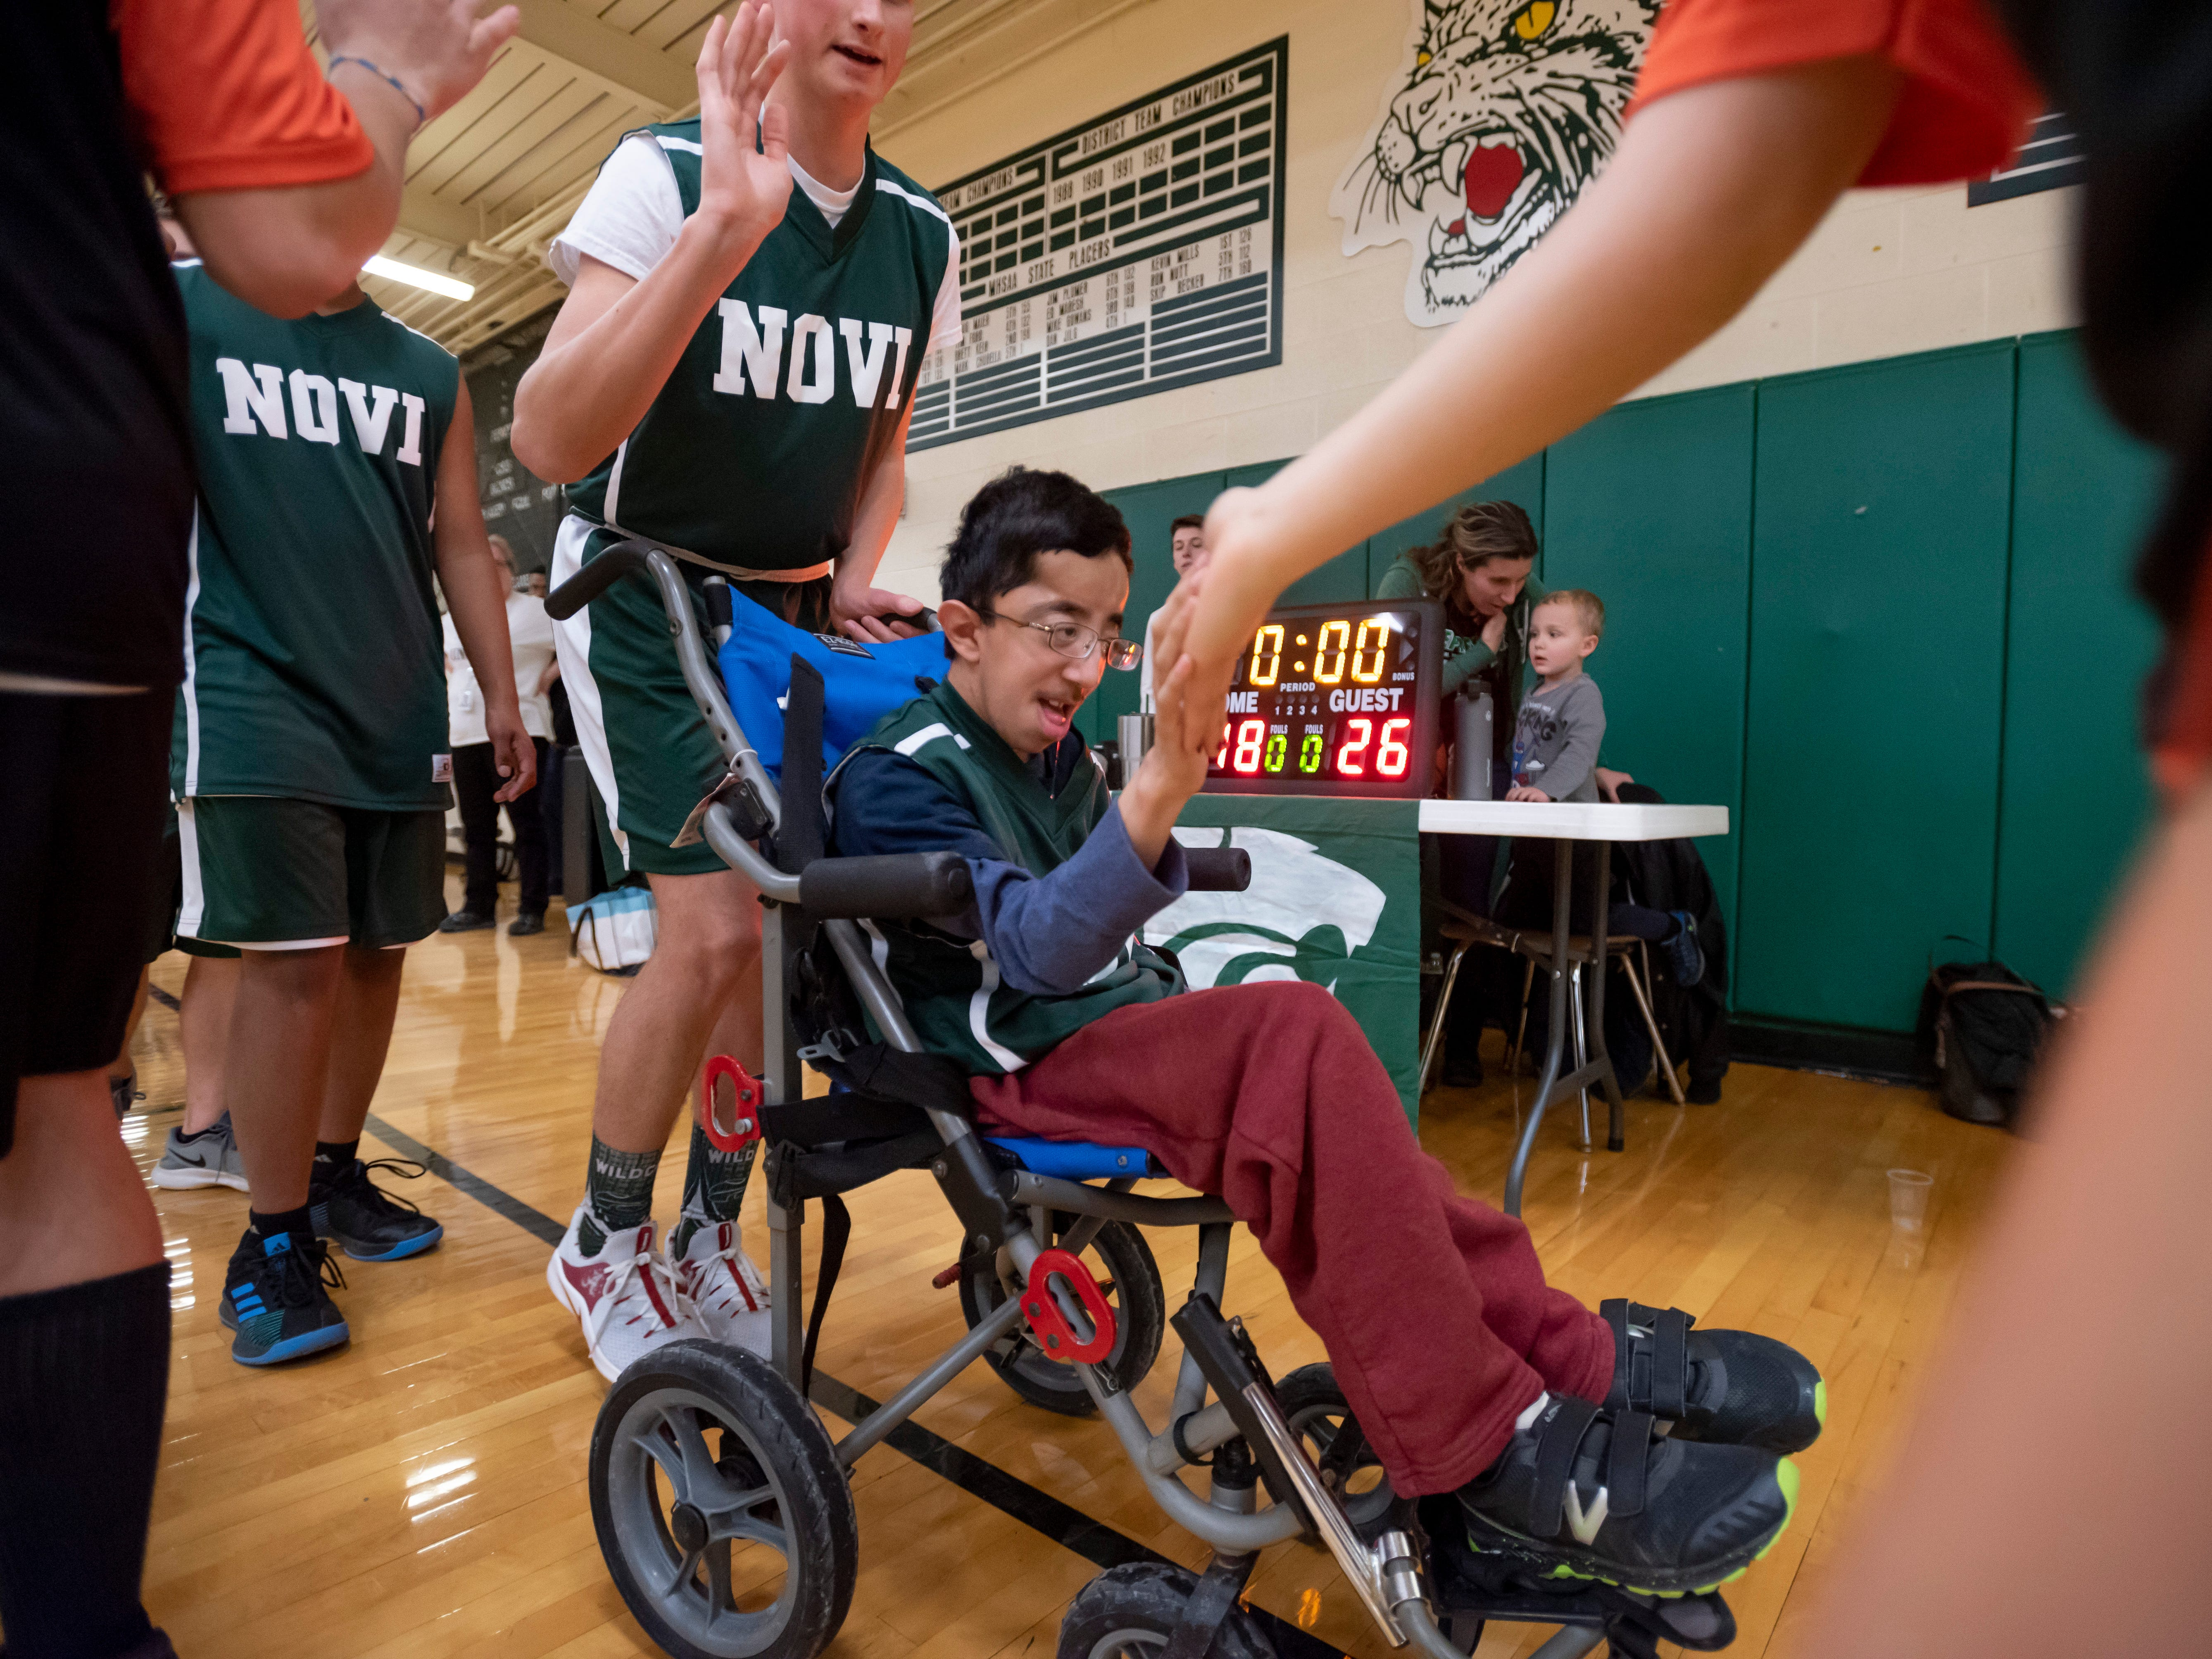 Members of the Novi team high five players from Brighton after a game during the Kensington Lakes Athletic Association Unified basketball tournament at Novi high school.